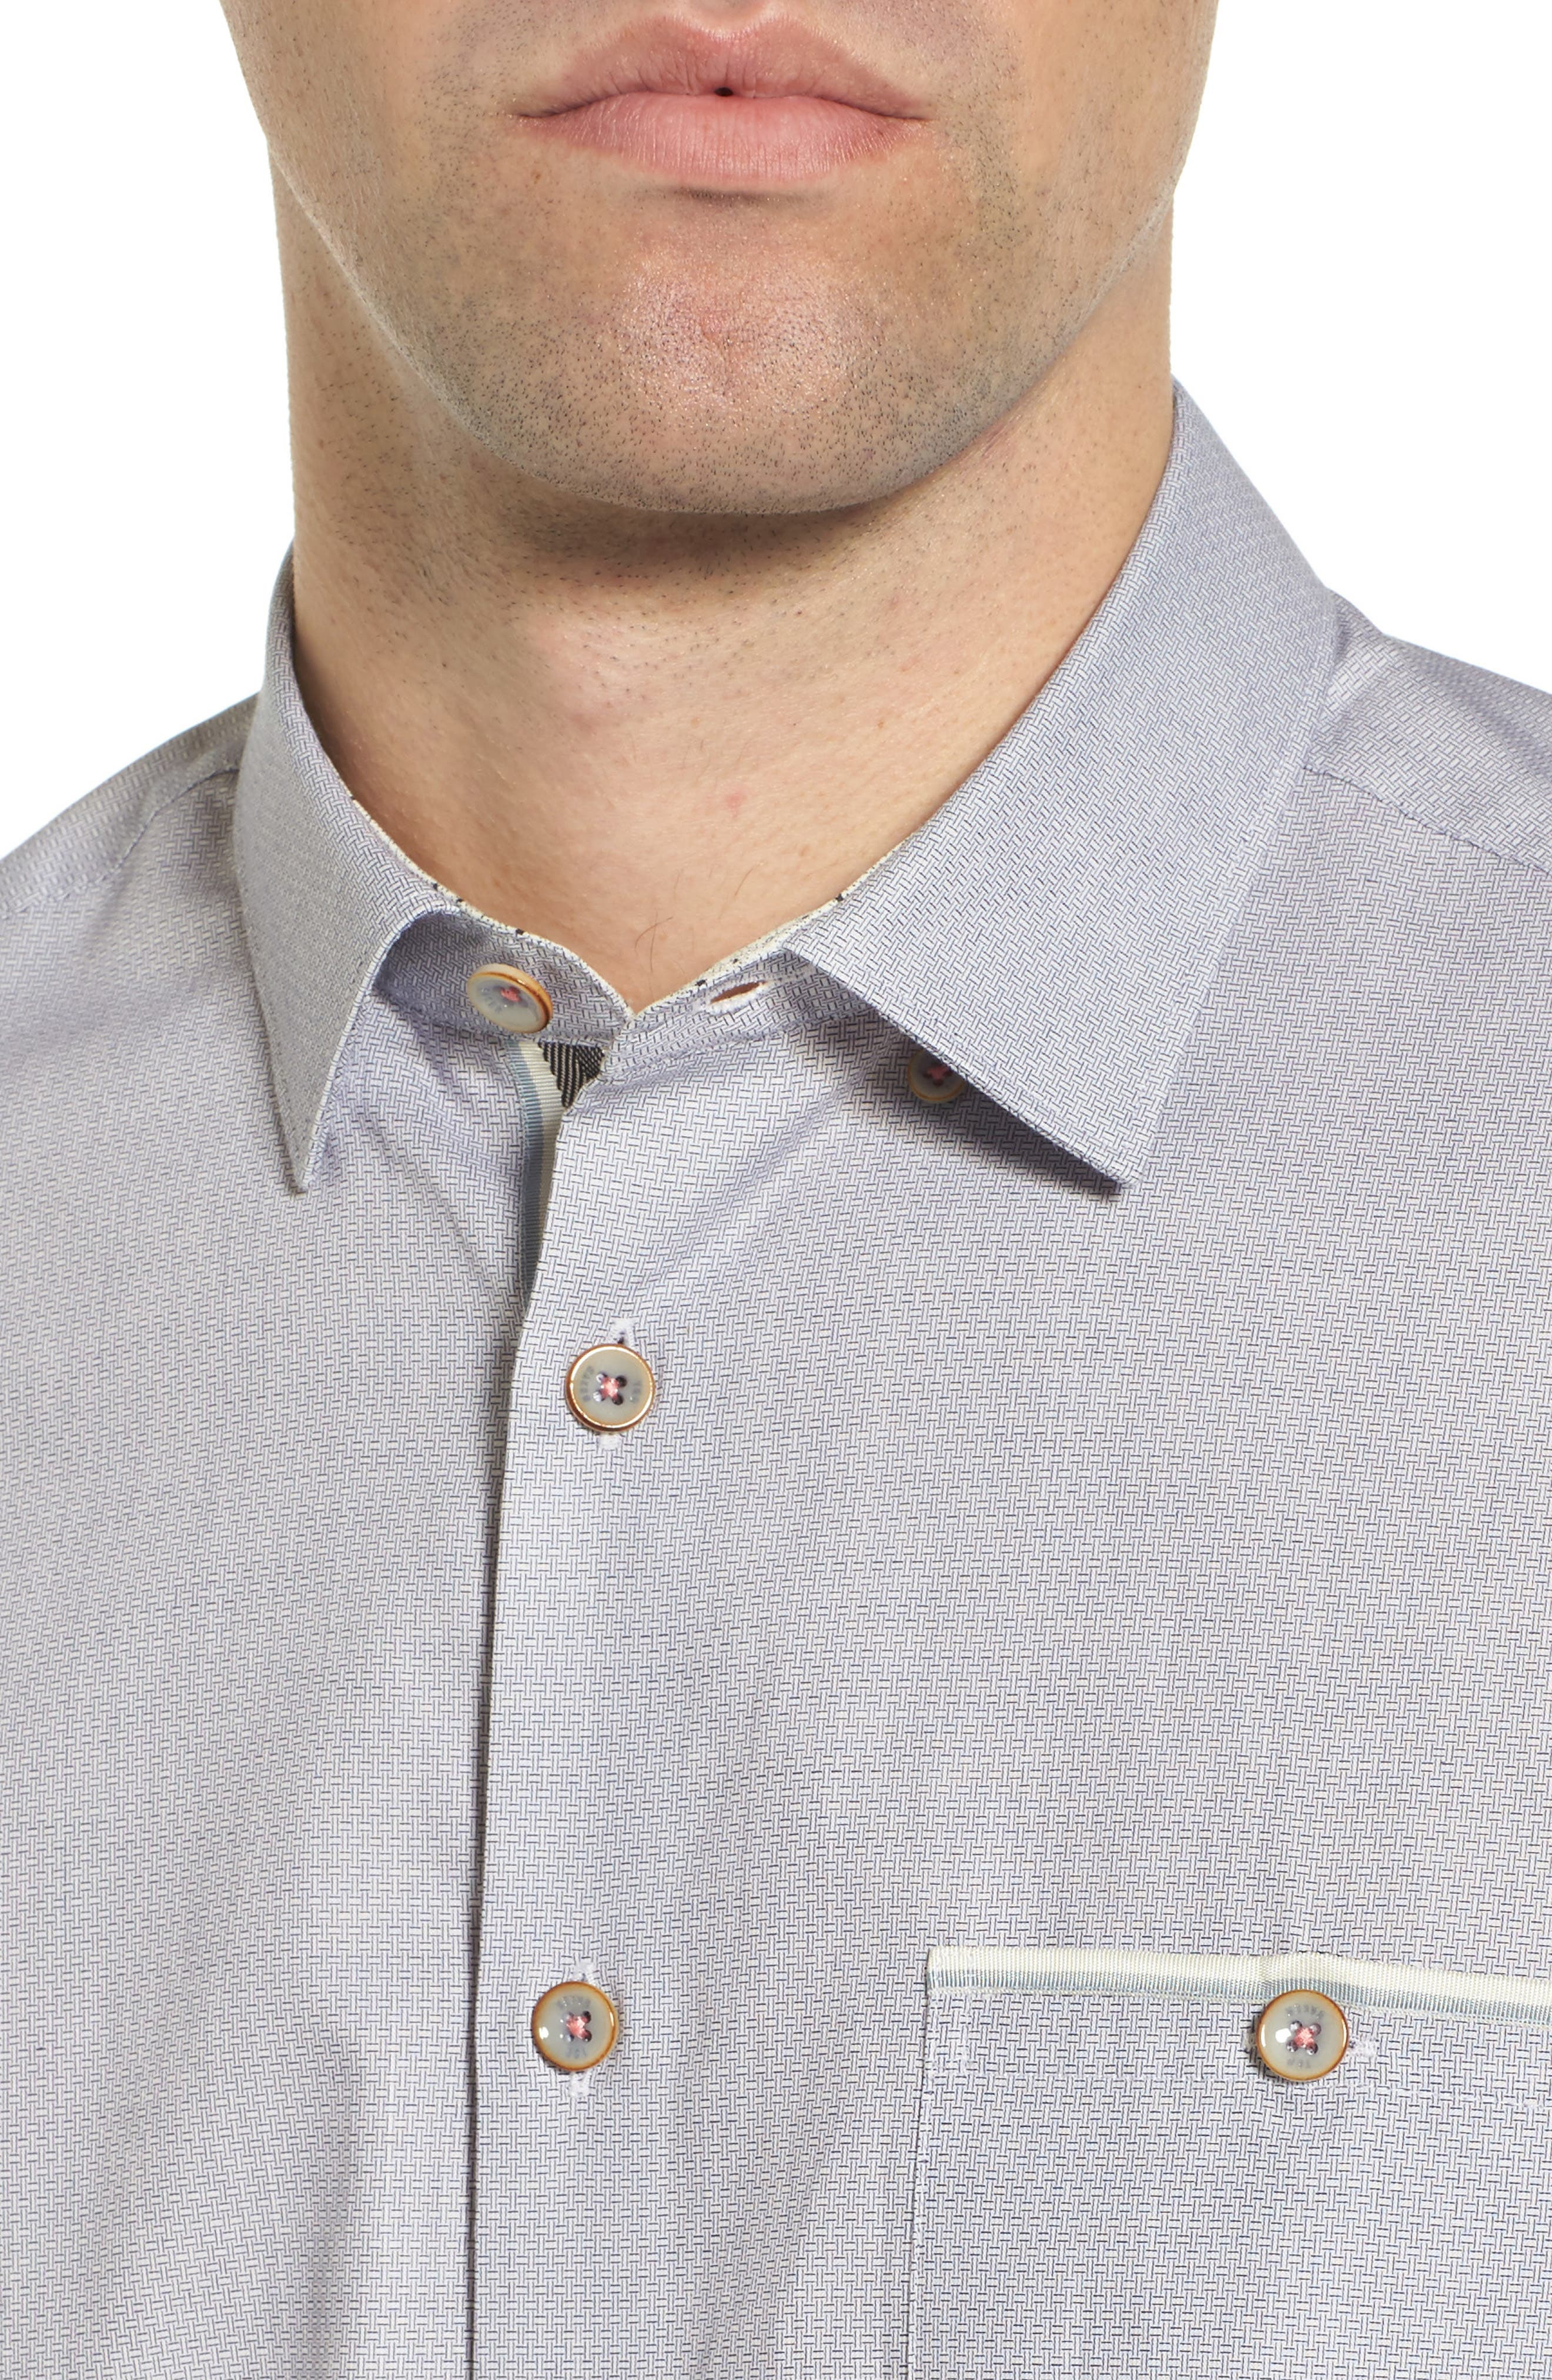 Wonky Trim Fit Oxford Sport Shirt,                             Alternate thumbnail 4, color,                             100